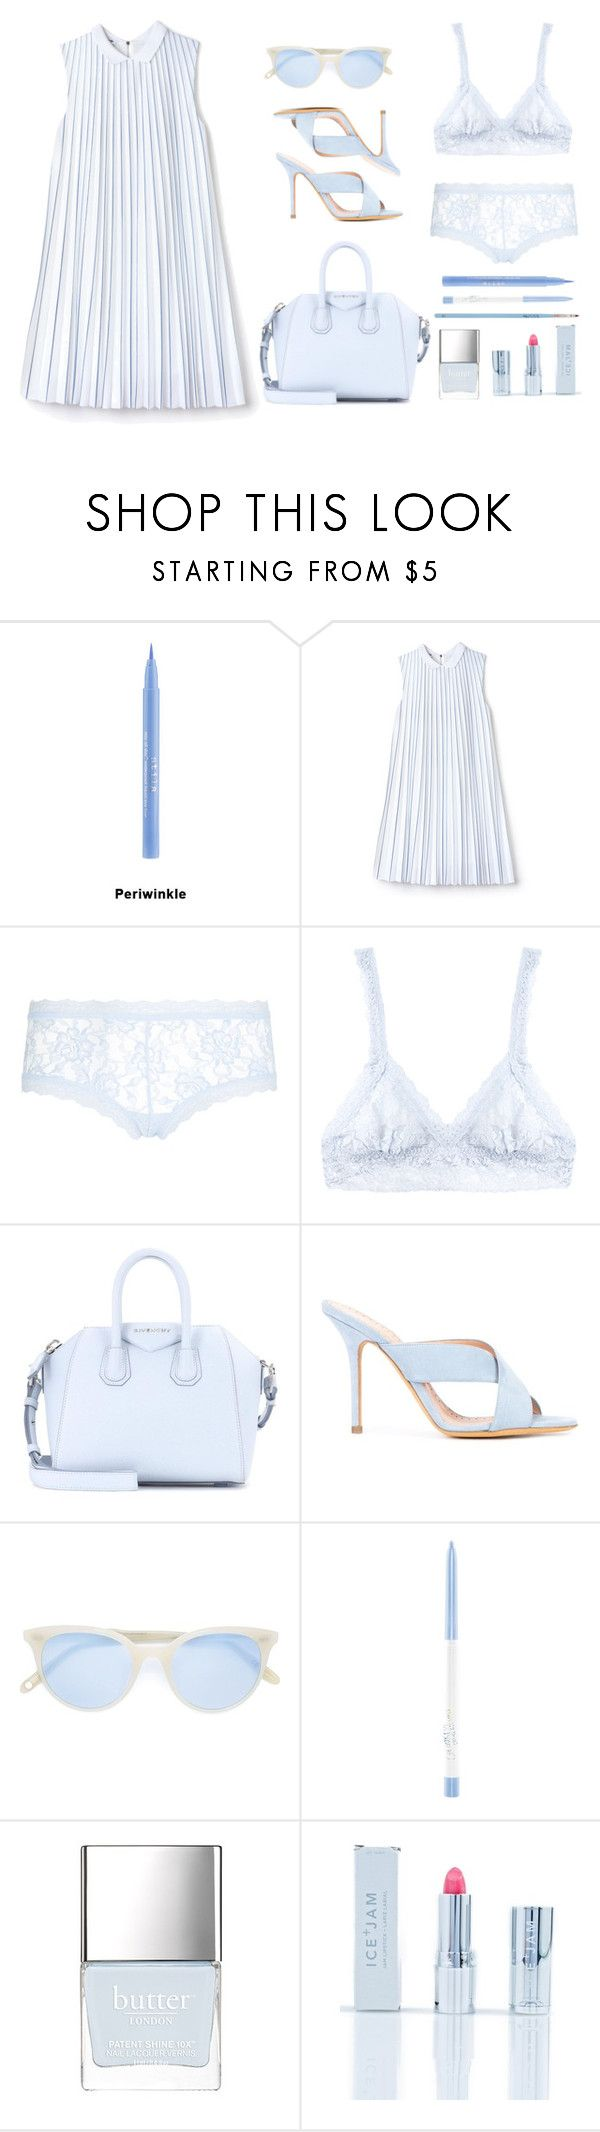 """Baby Blue"" by youaresofashion ❤ liked on Polyvore featuring Stila, Lacoste, Hanky Panky, Givenchy, ALEXA WAGNER, Garrett Leight, Ice + Jam, My Kit Co. and prettyunderpinnings"